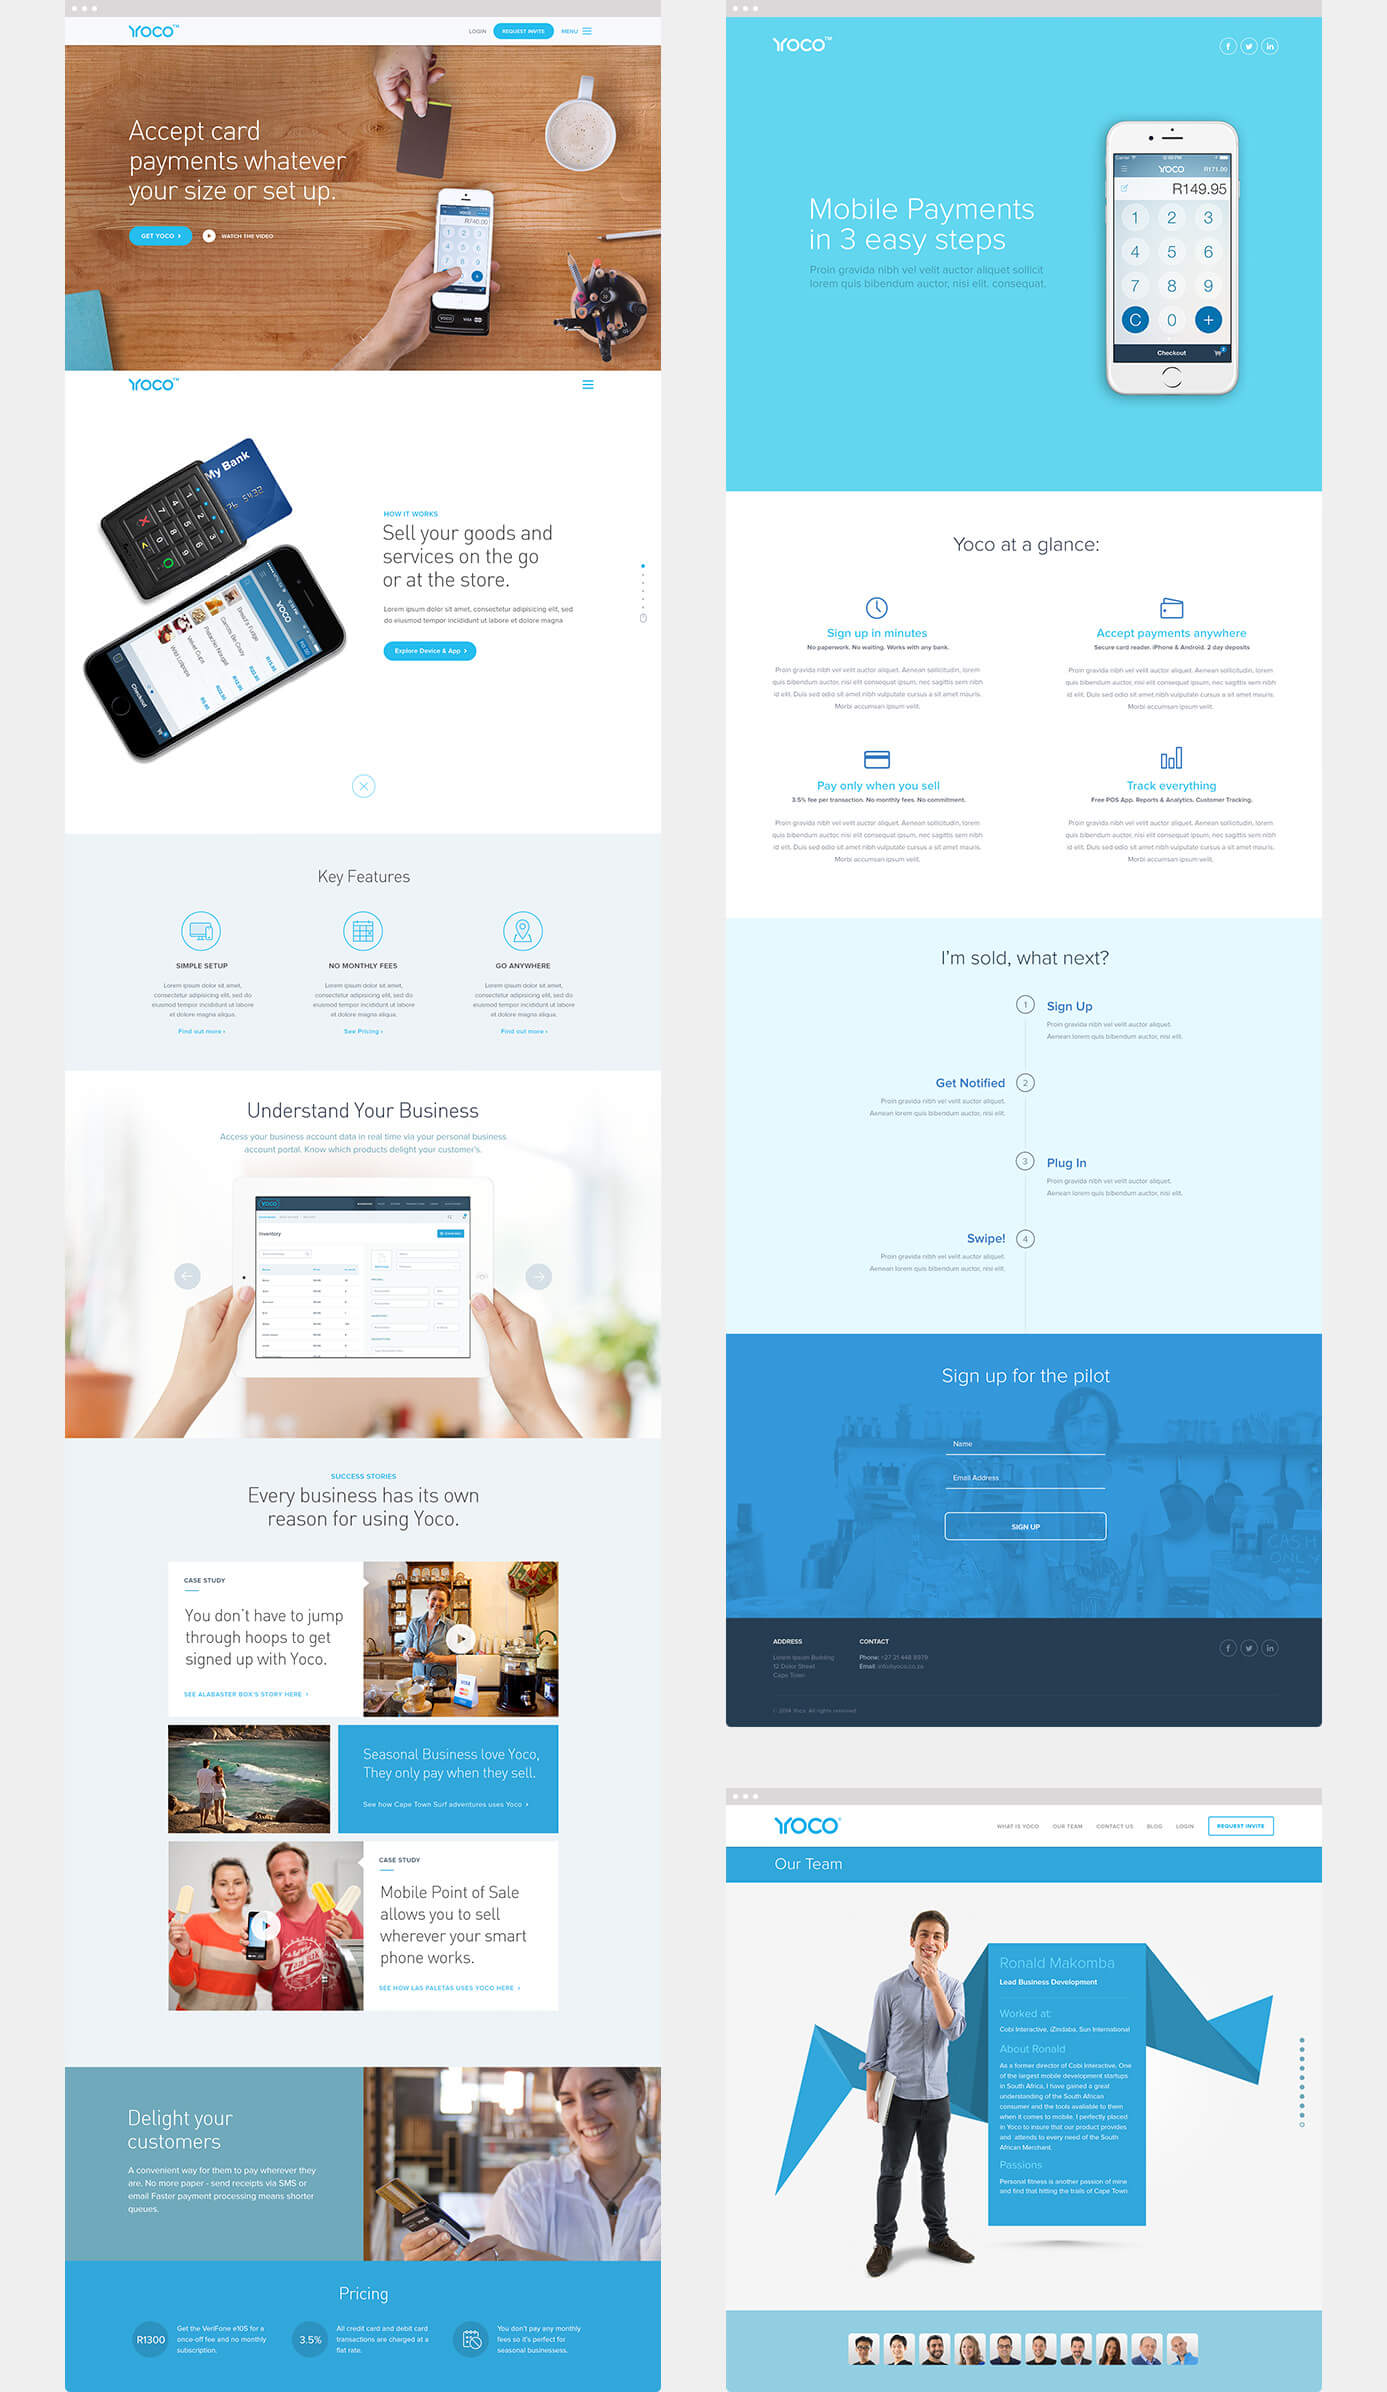 Yoco Marketing & Pilot Site Designs